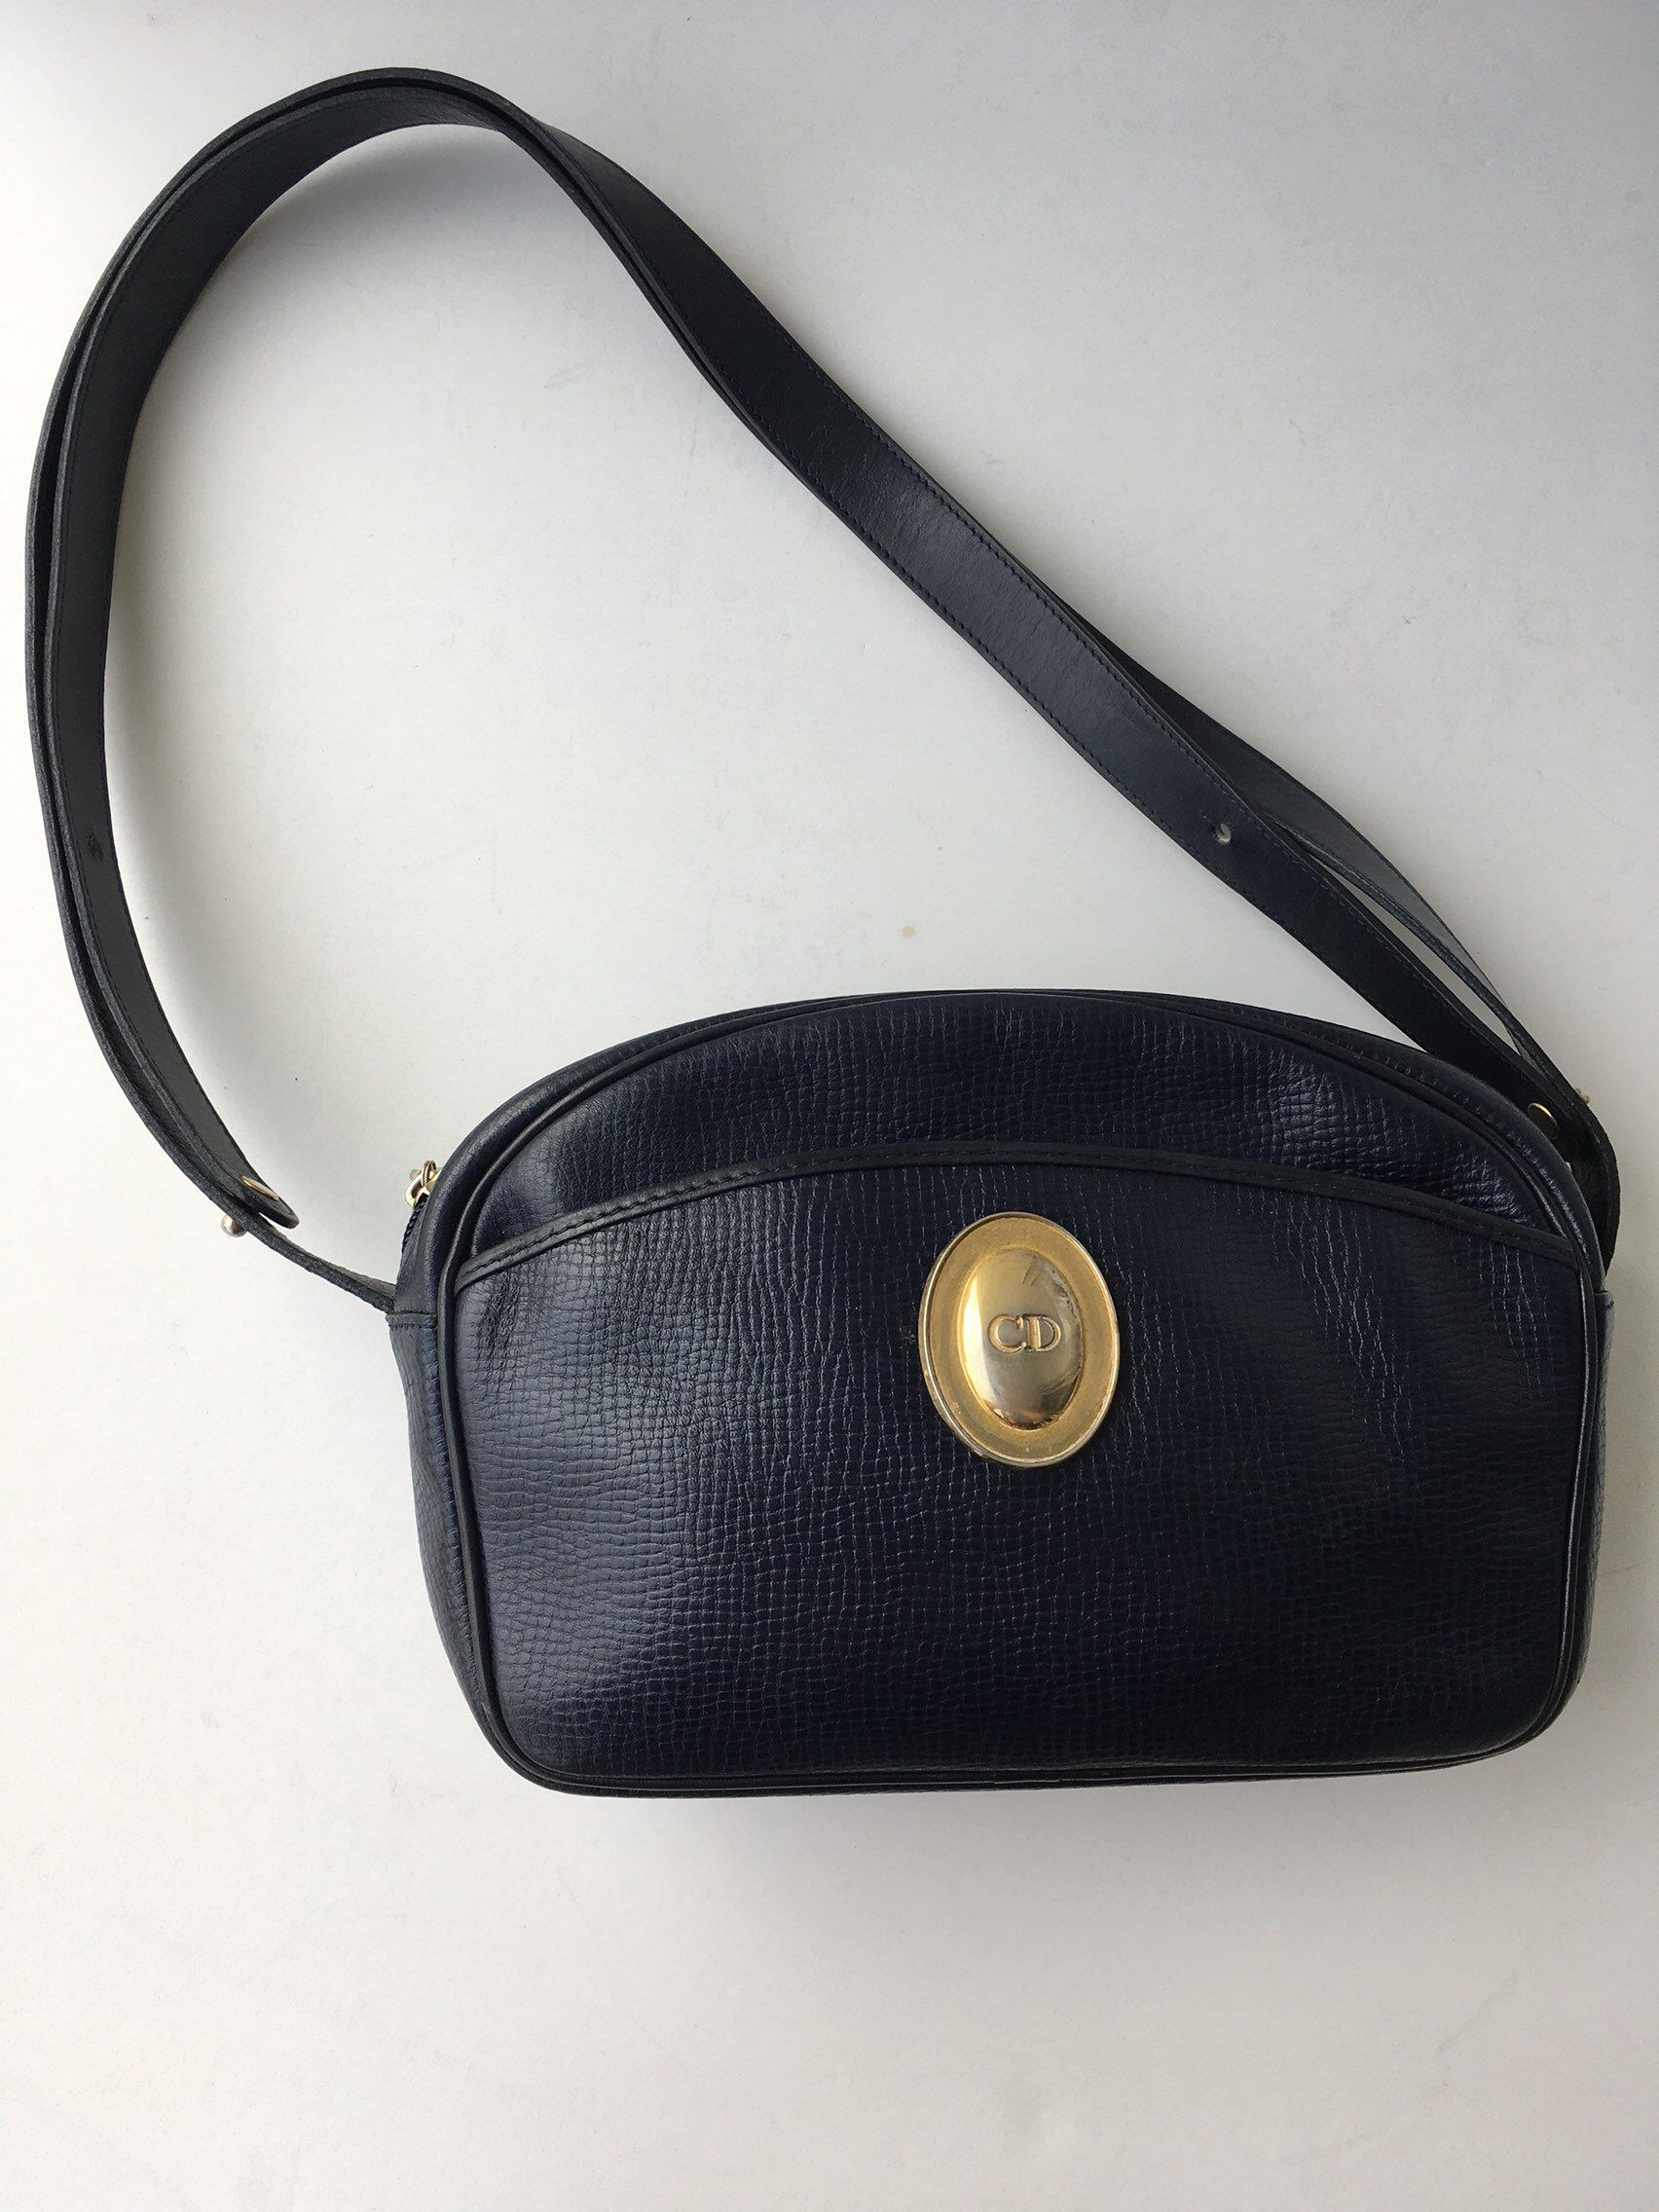 6b37c8ffba9a Excited to share this item from my  etsy shop  Authentic Christian Dior  Shoulder Bag